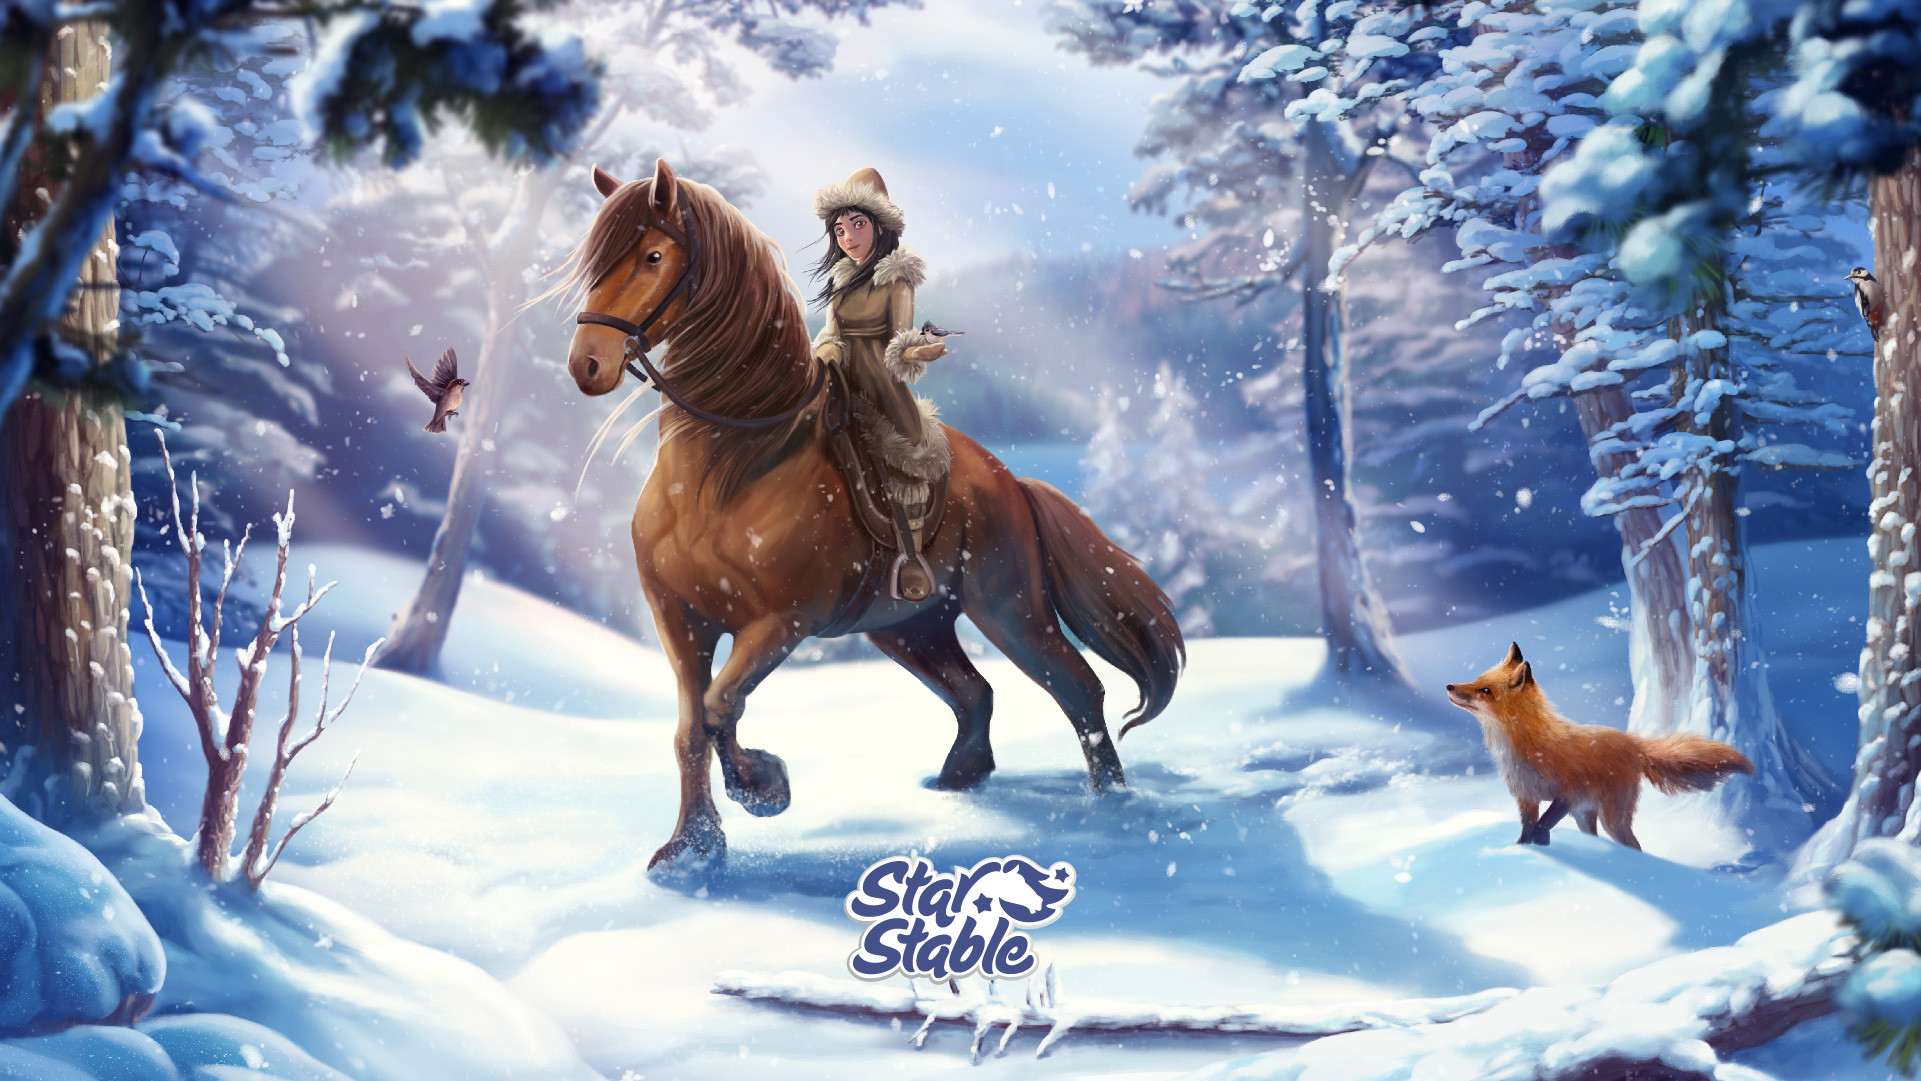 3d Movies Wallpapers Free Download Star Stable Wallpapers 65 Images